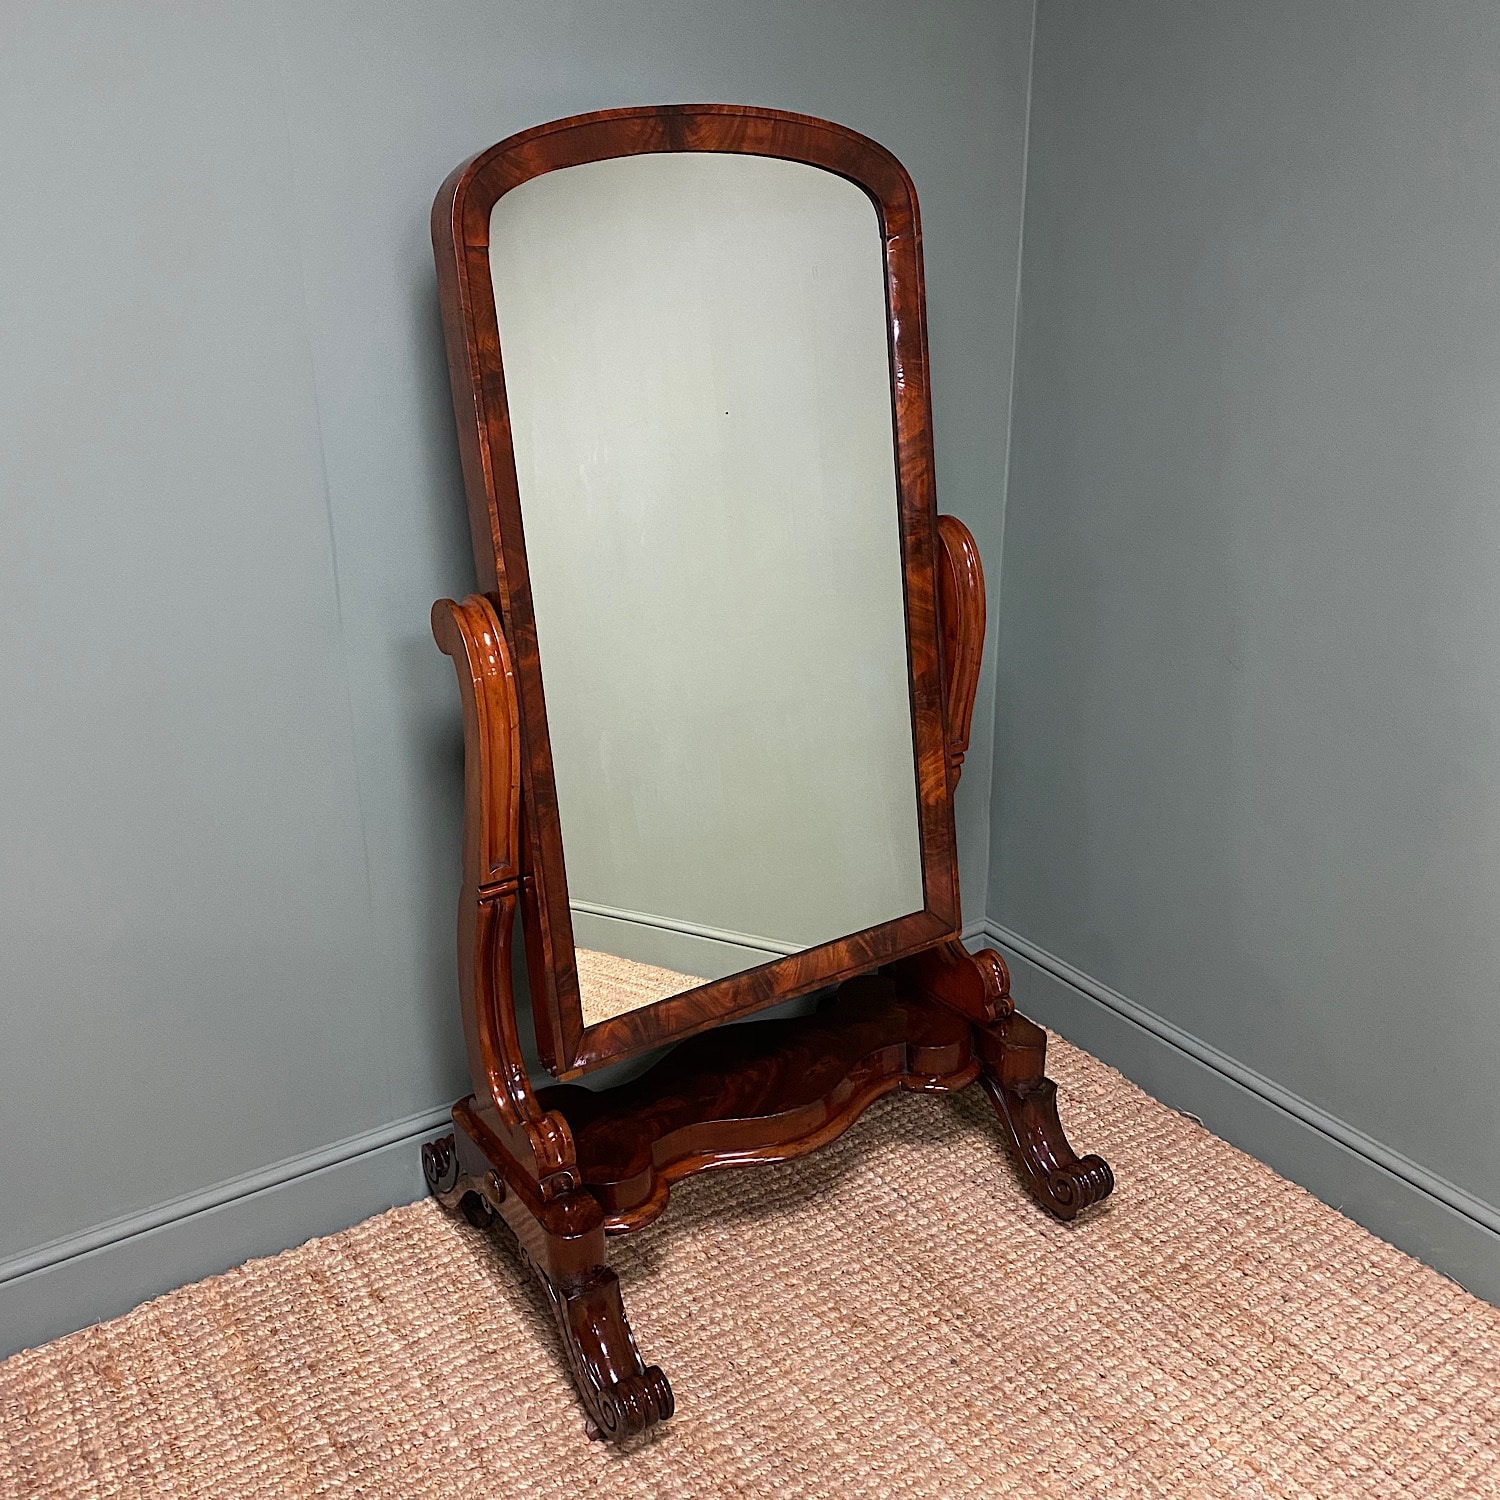 Stunning Victorian Full Length Mahogany Antique Cheval Mirror Antiques World